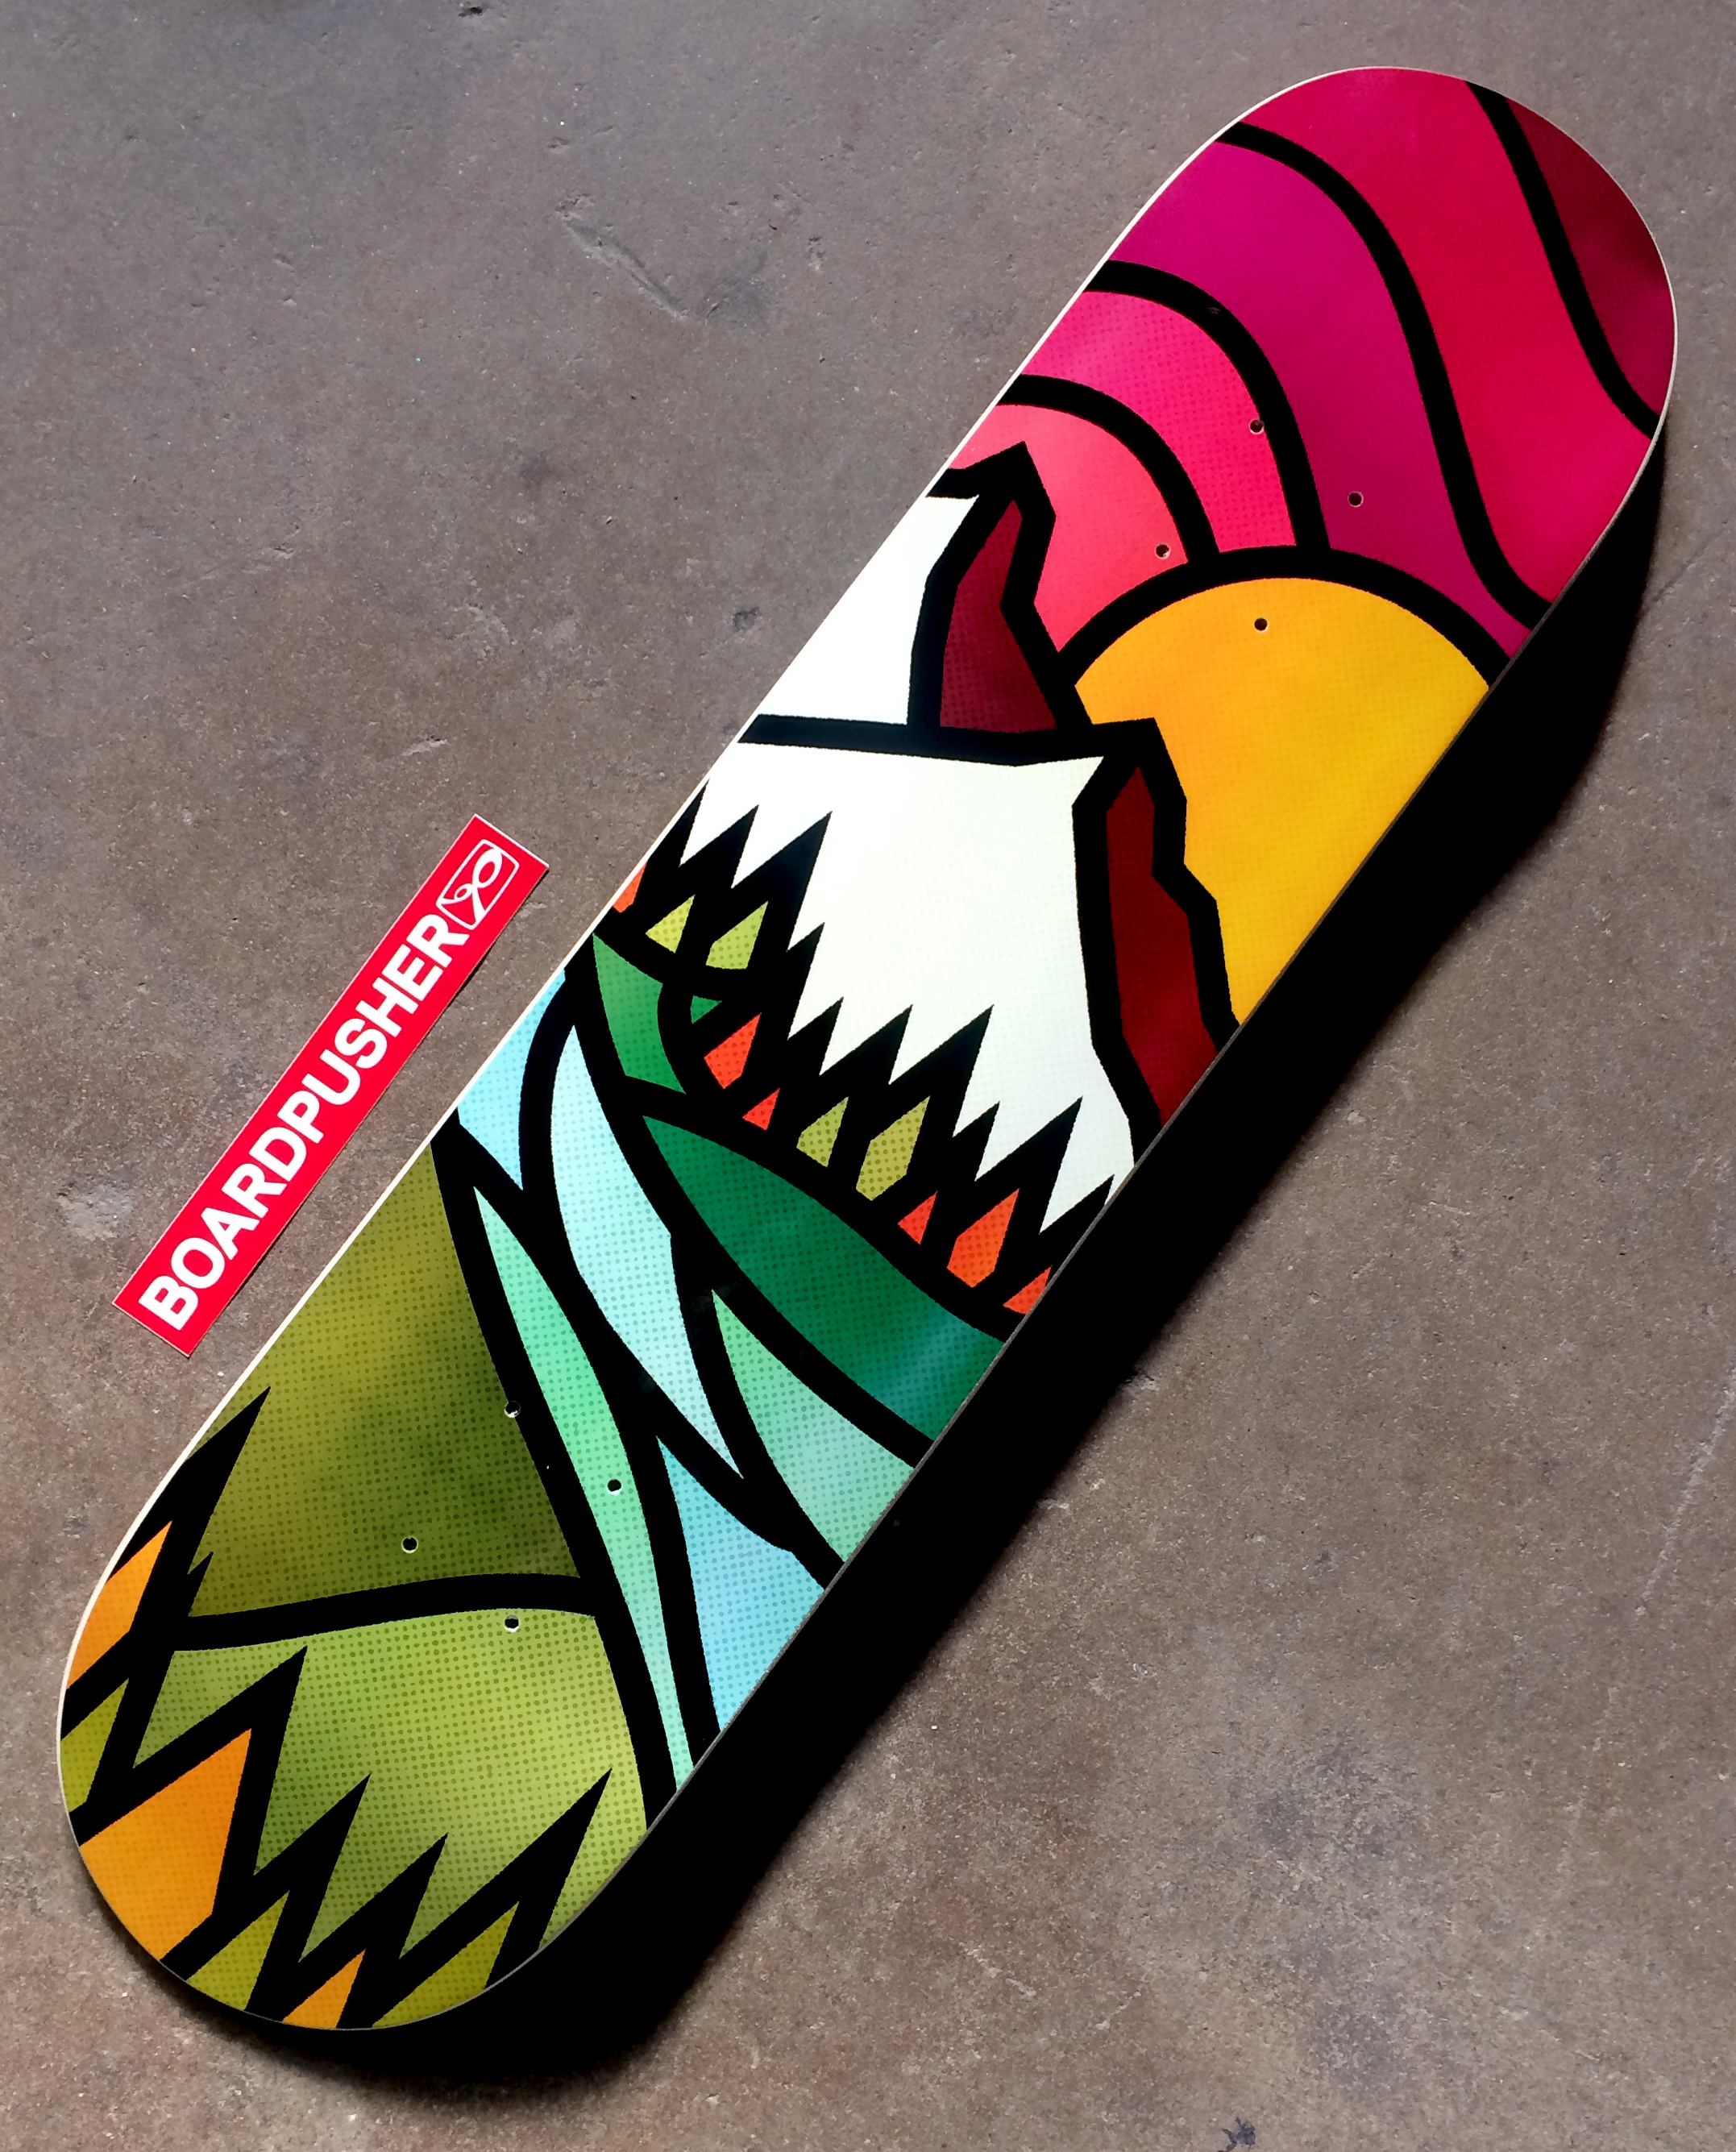 Create A Skateboard Deck Fascinating Custom Skateboard Page 2 Inspiration